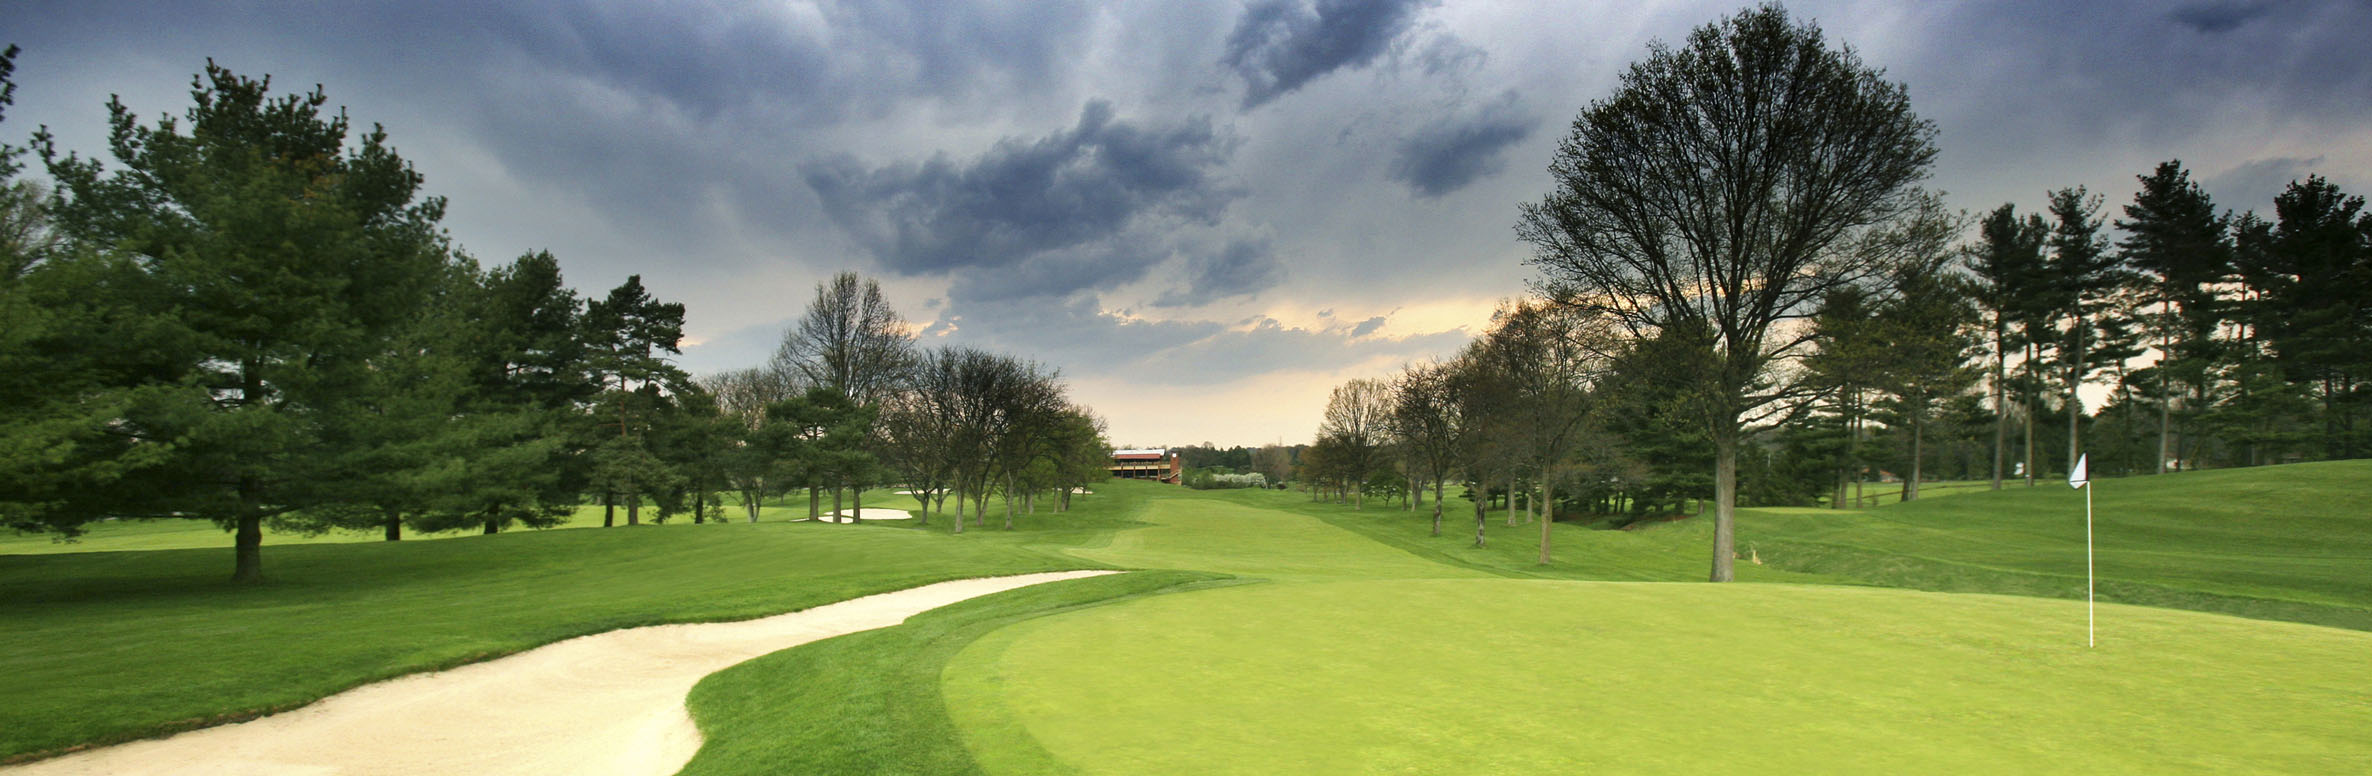 Golf Course Image - Firestone Country Club South No. 1